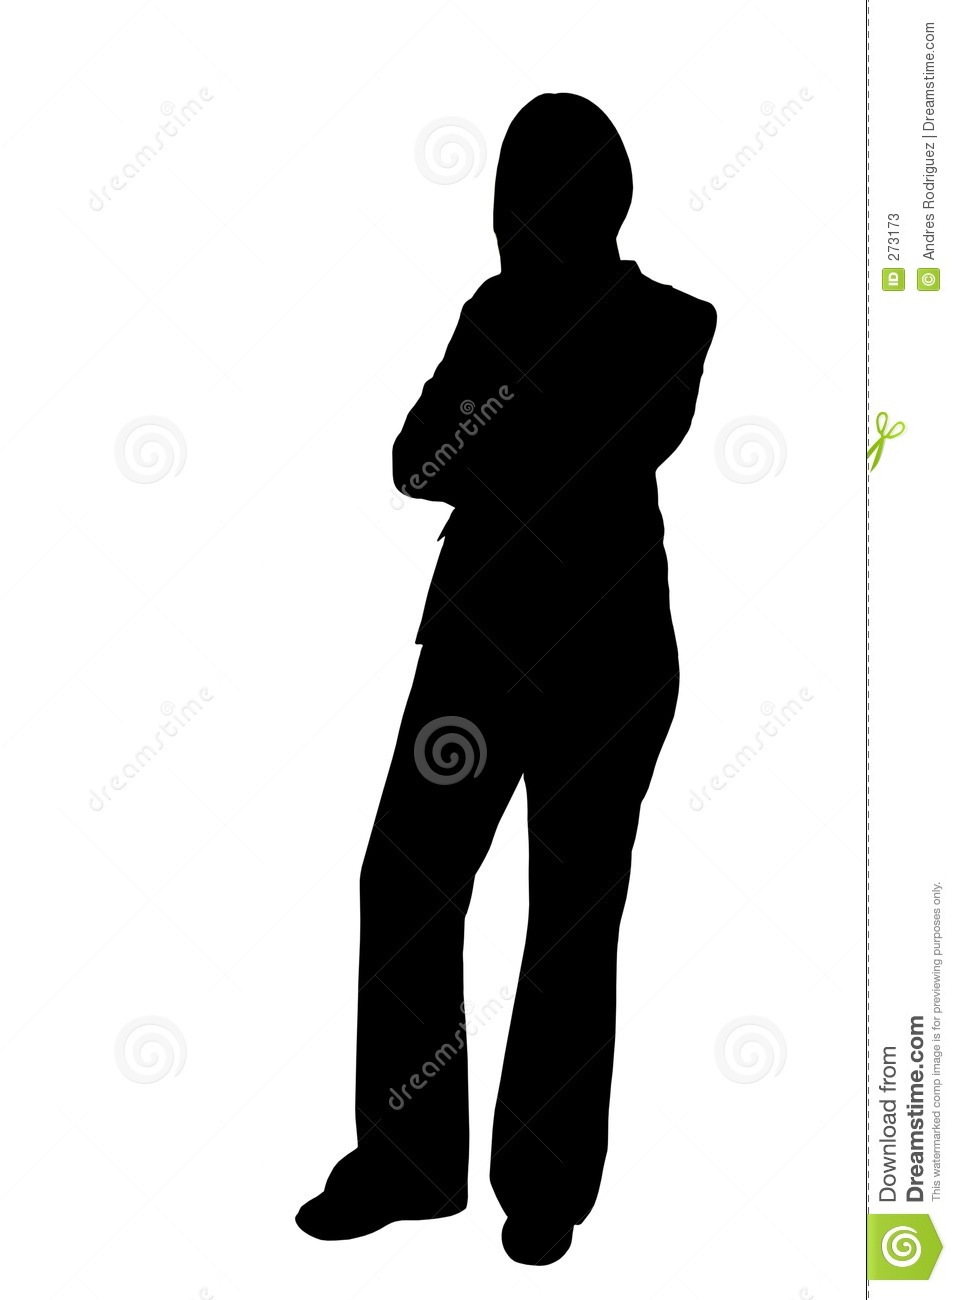 business-woman-standing-silhouette-illus